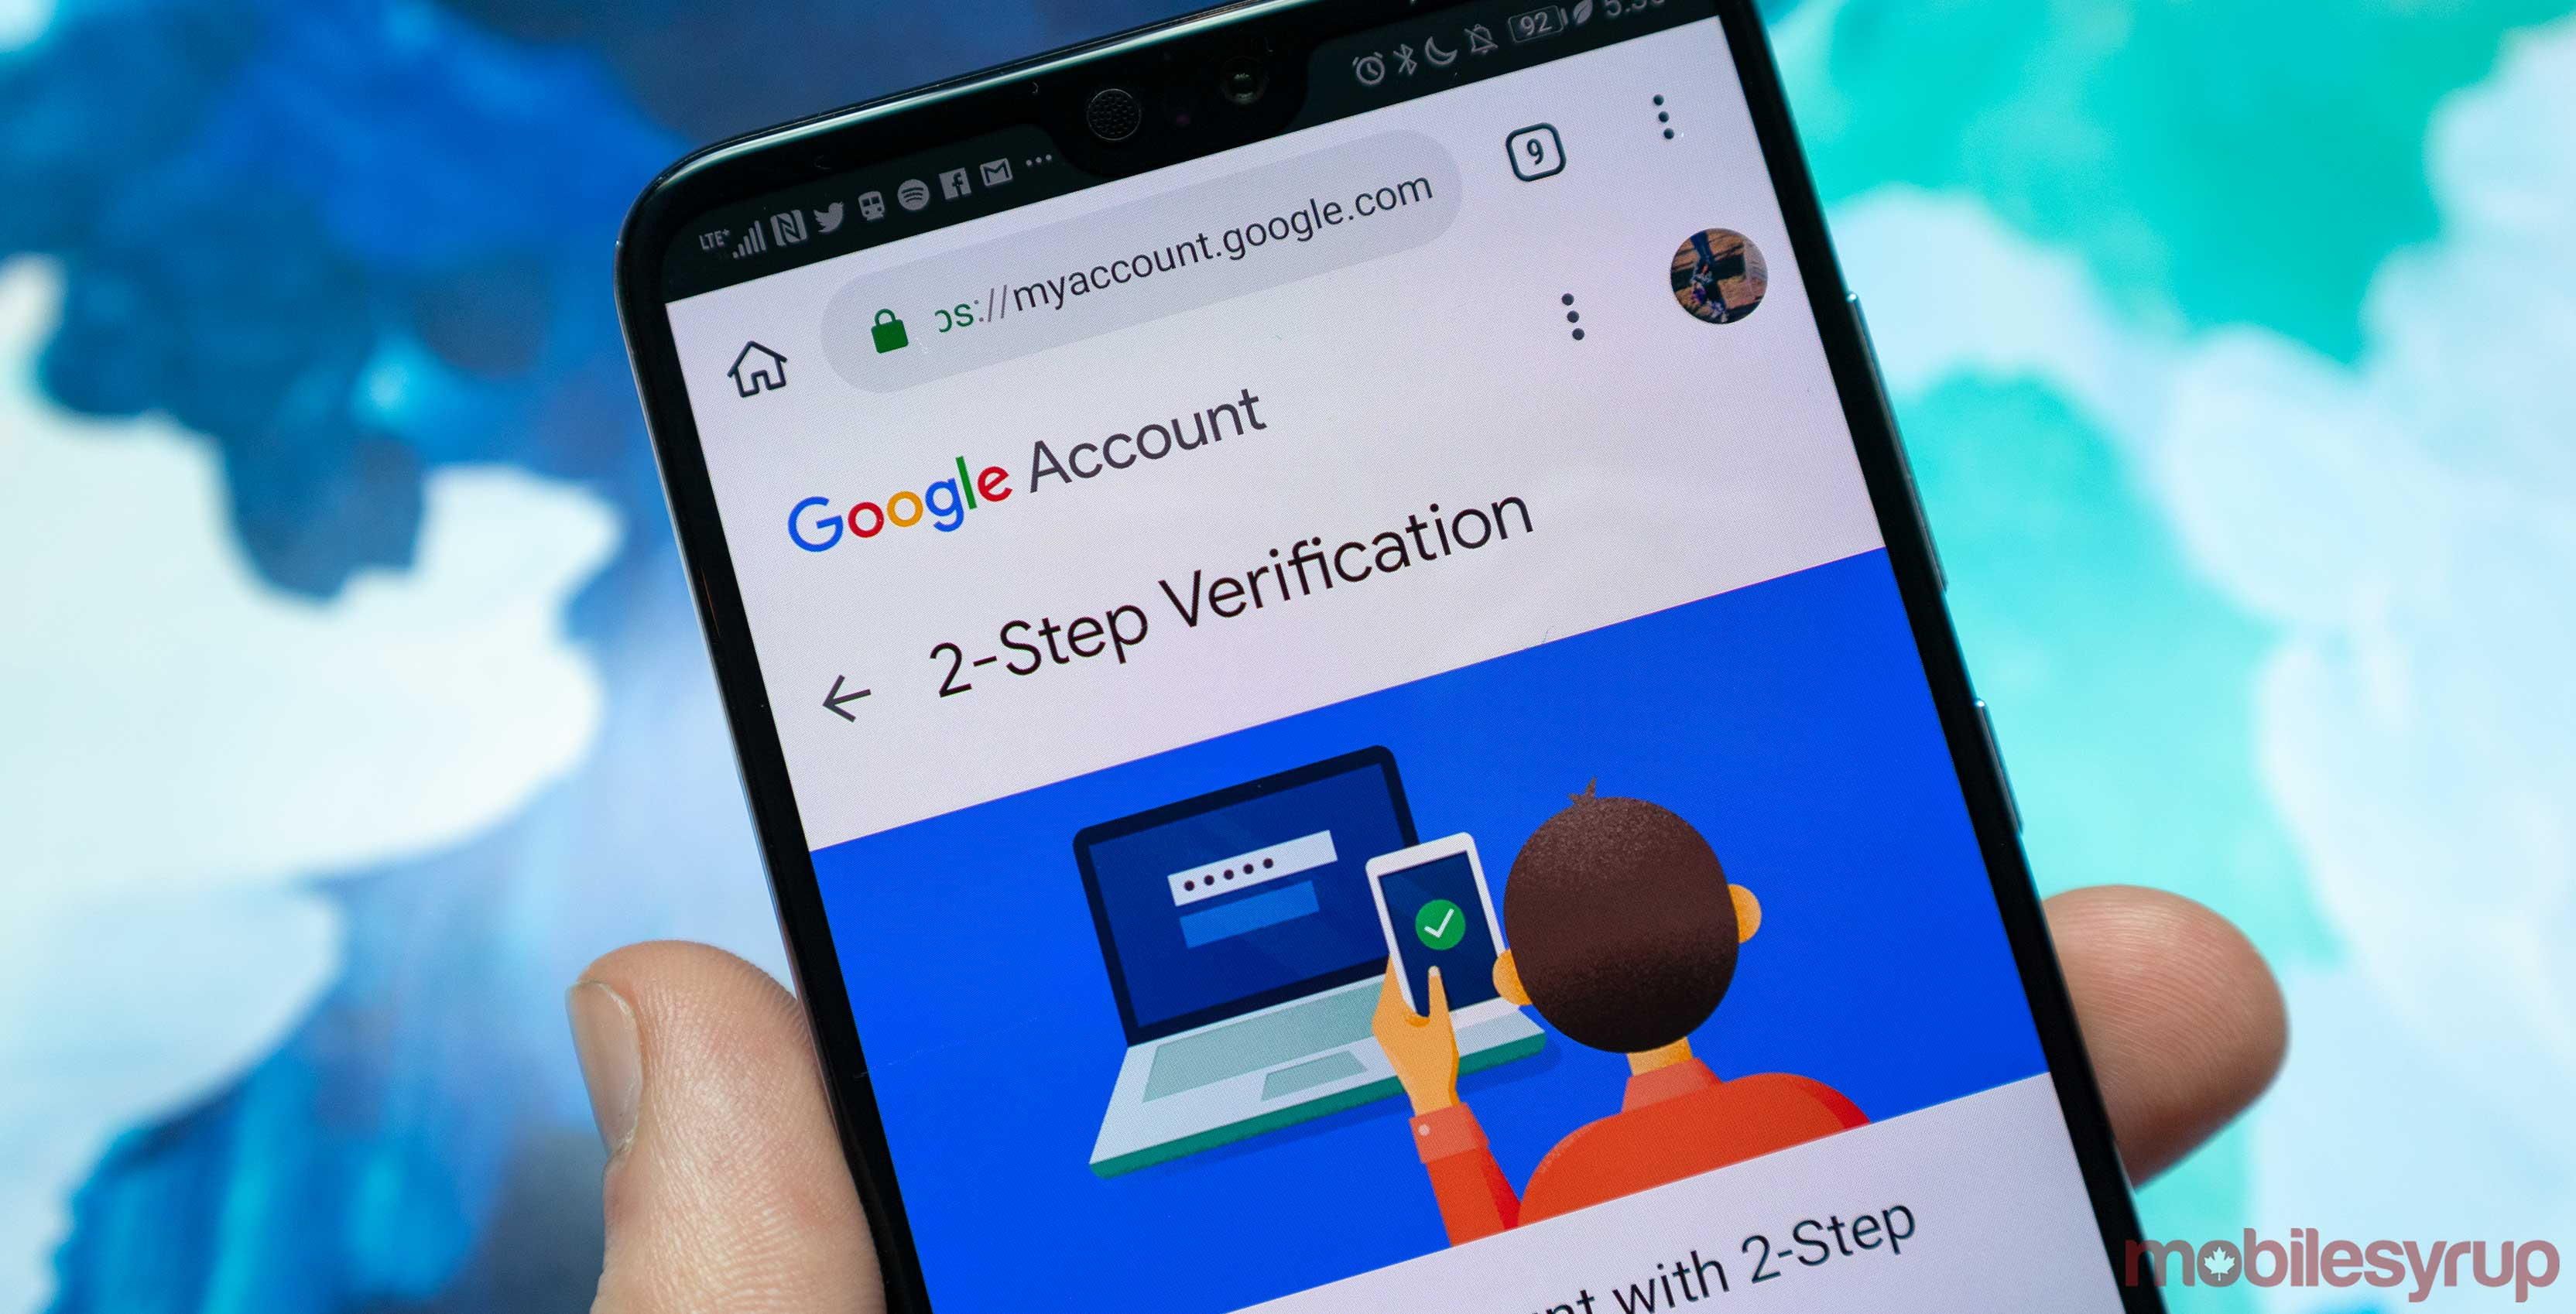 Your Android phone's volume key can unlock your Google account